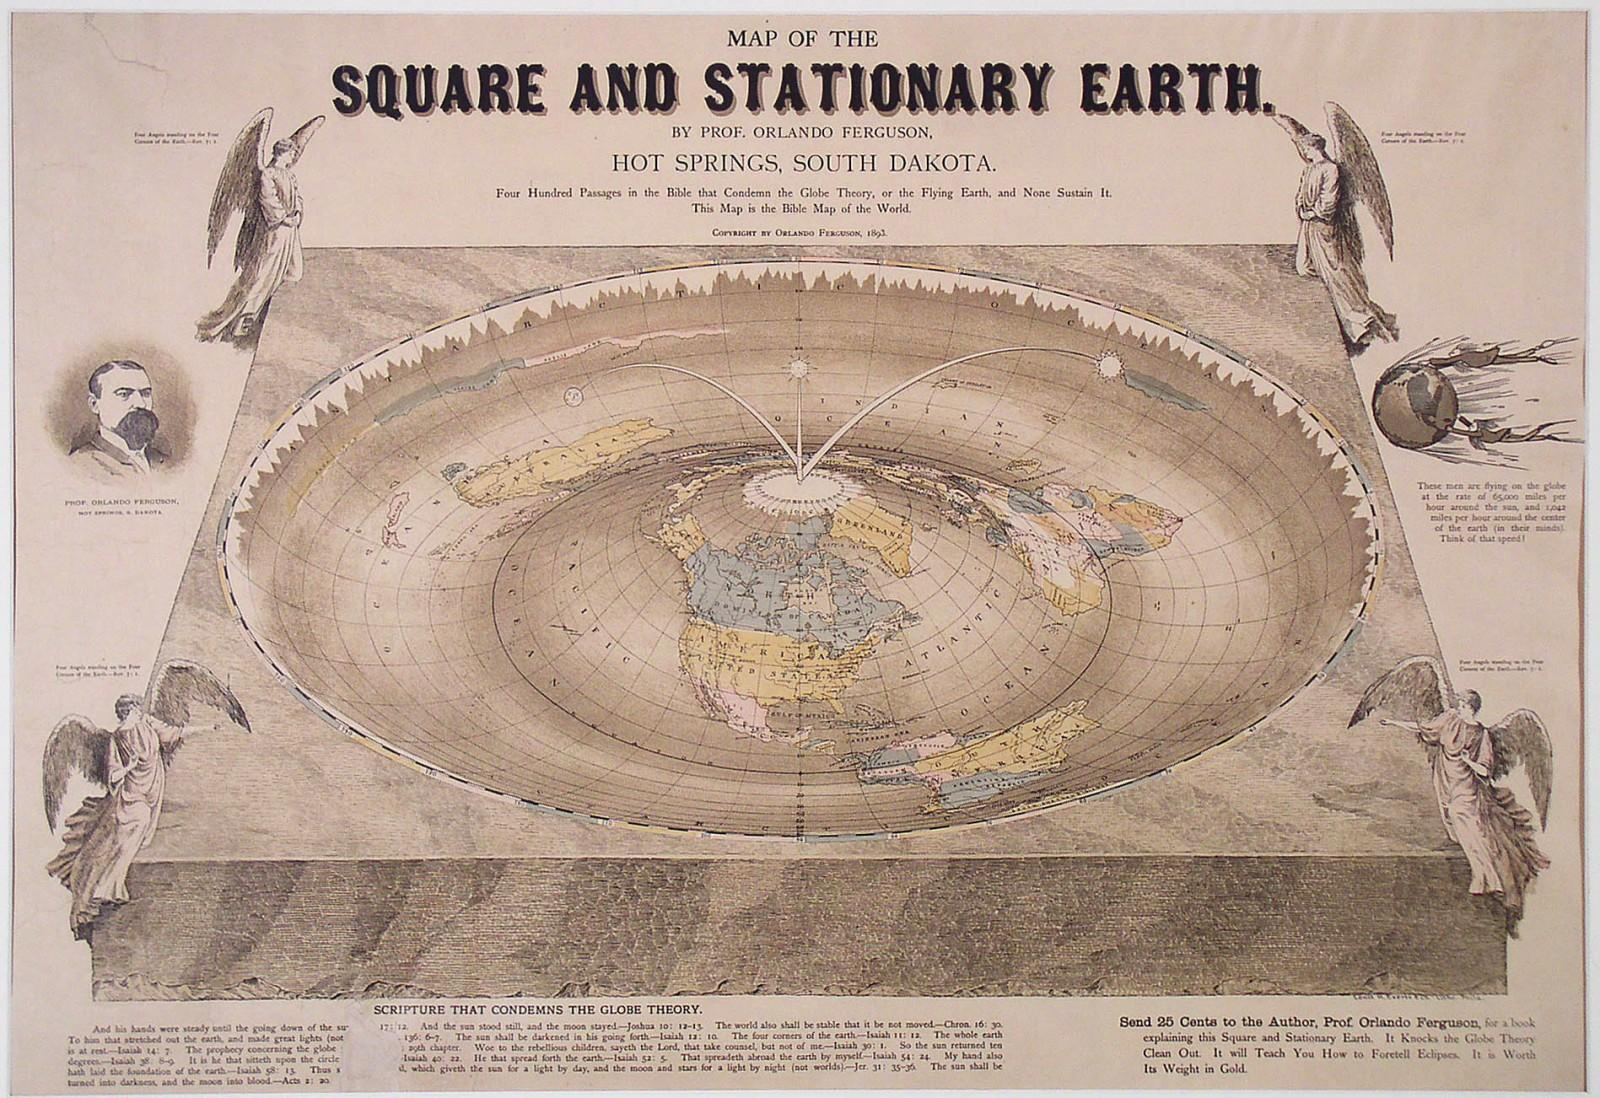 brm1124-square-stationary-earth-1893-1600x1098